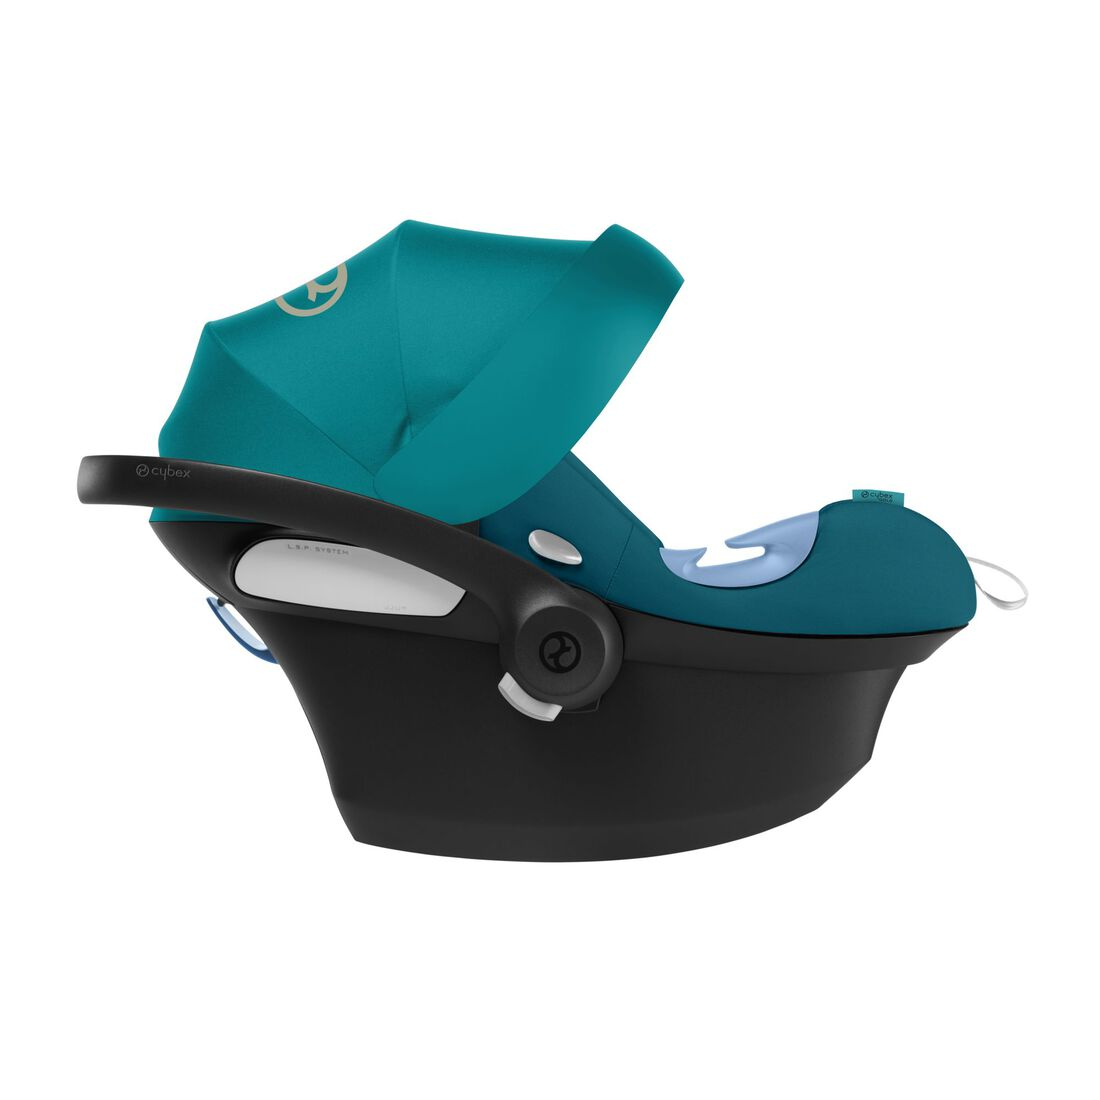 CYBEX Aton M i-Size - River Blue in River Blue large image number 5